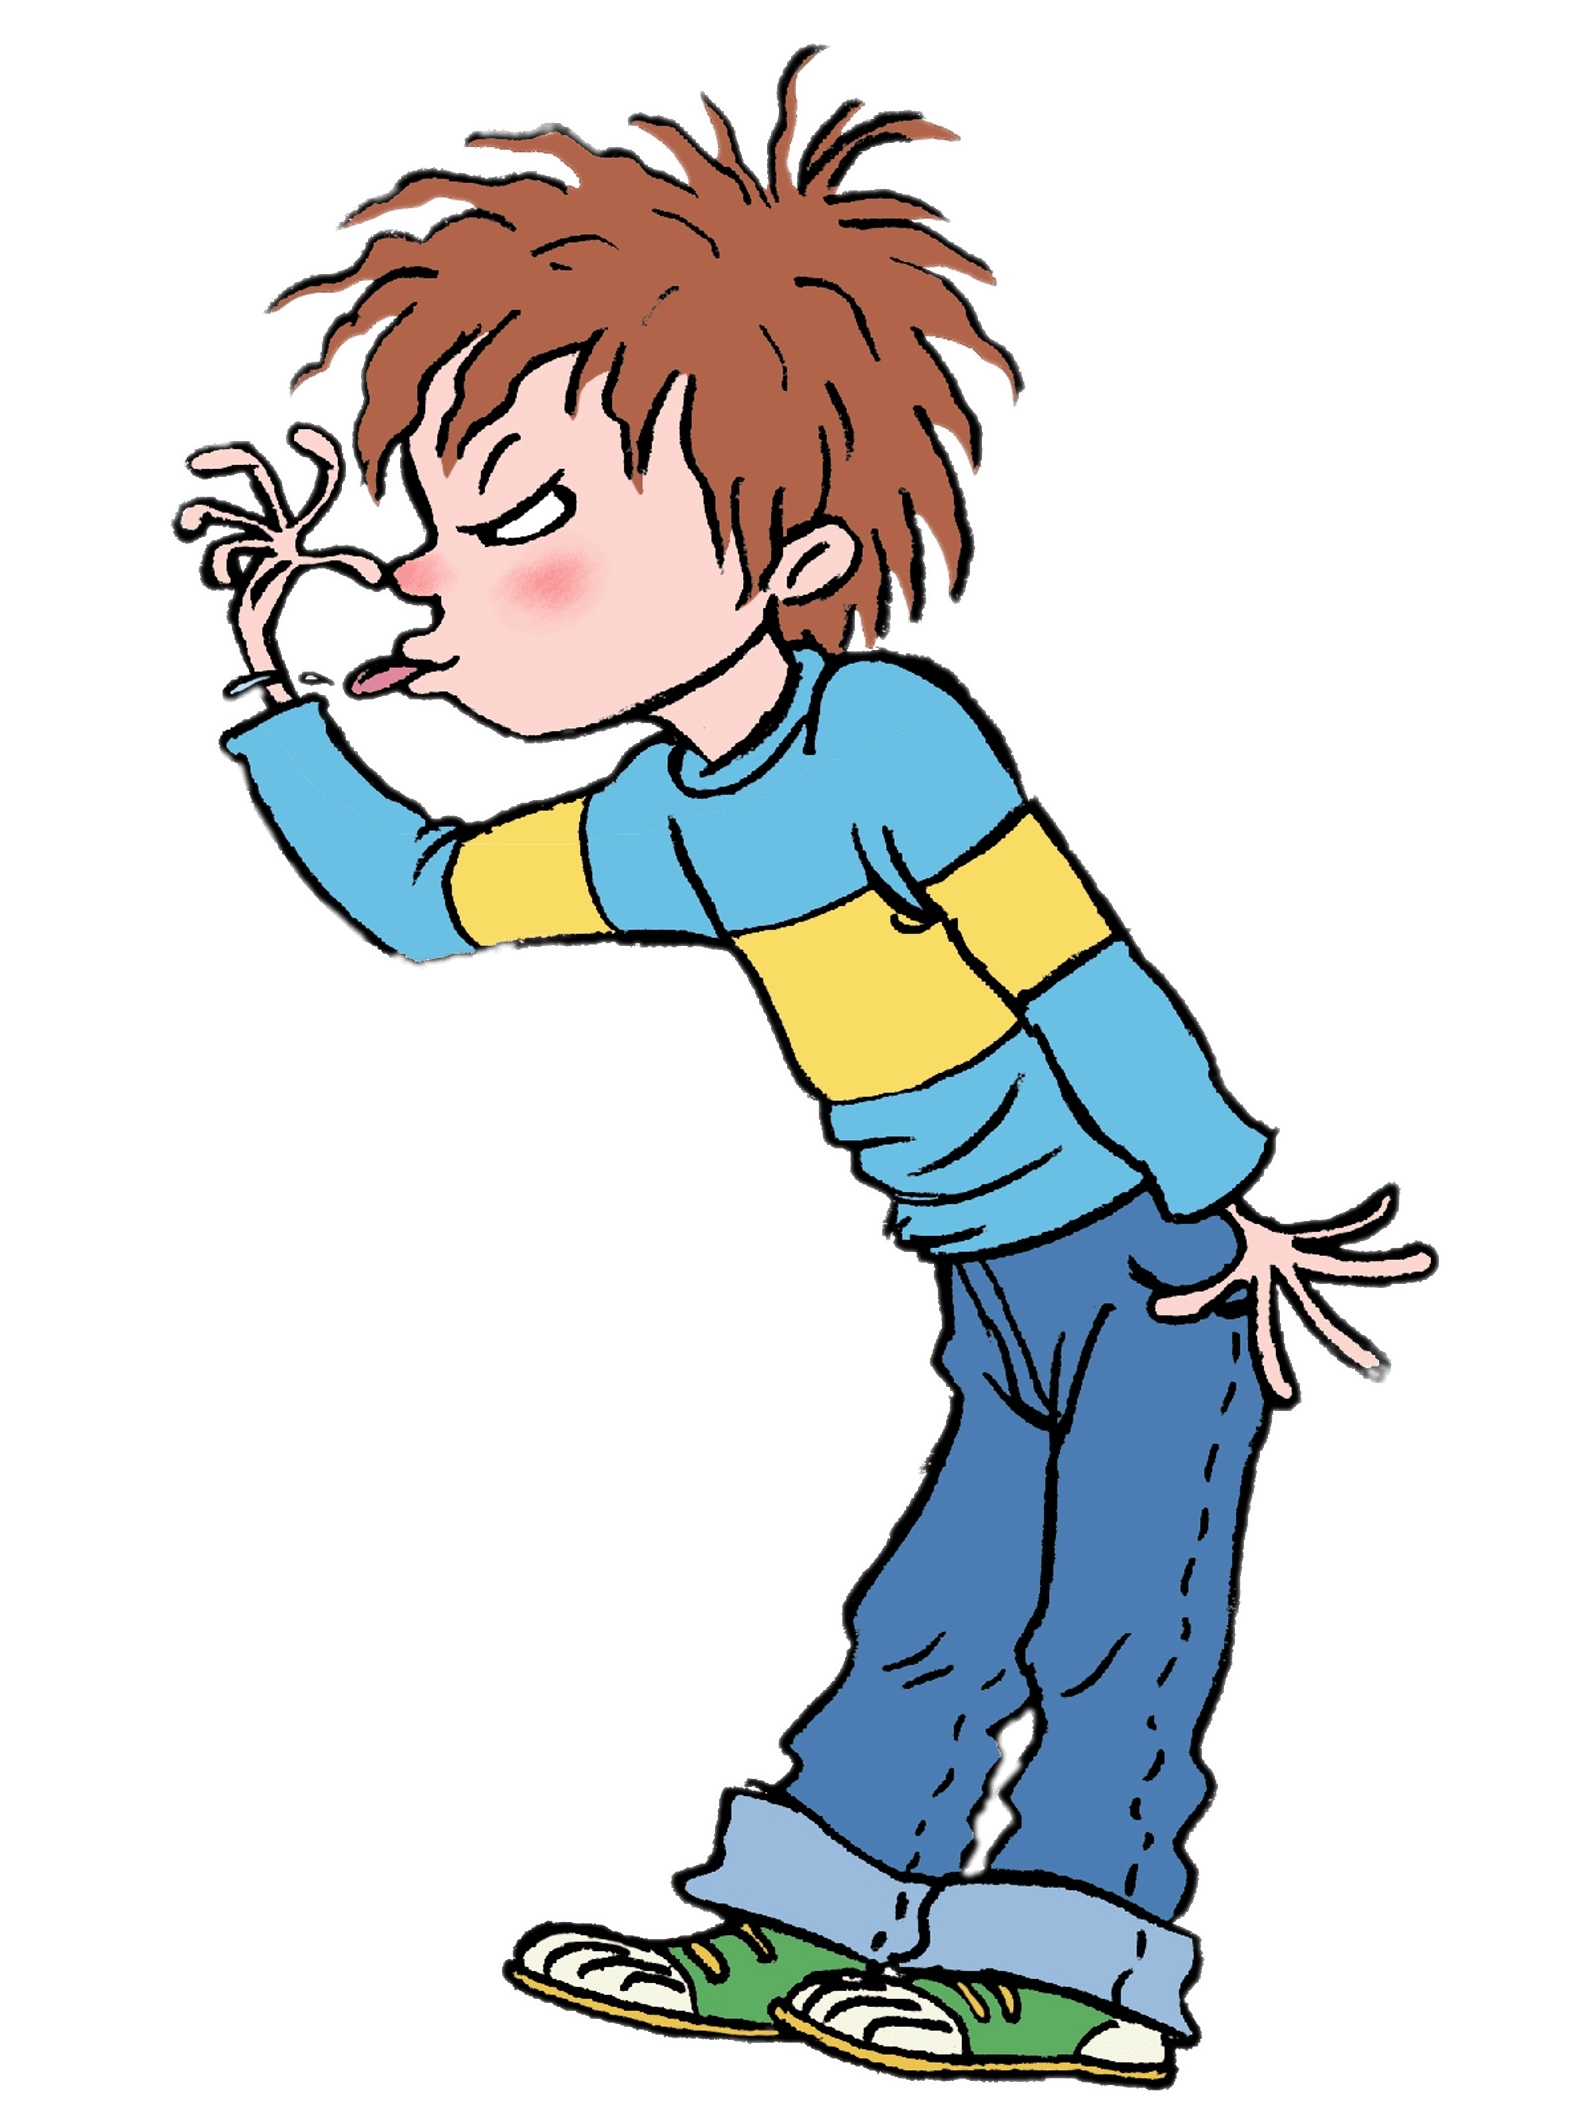 Person tongue sticking out png. Horrid henry transparent stickpng